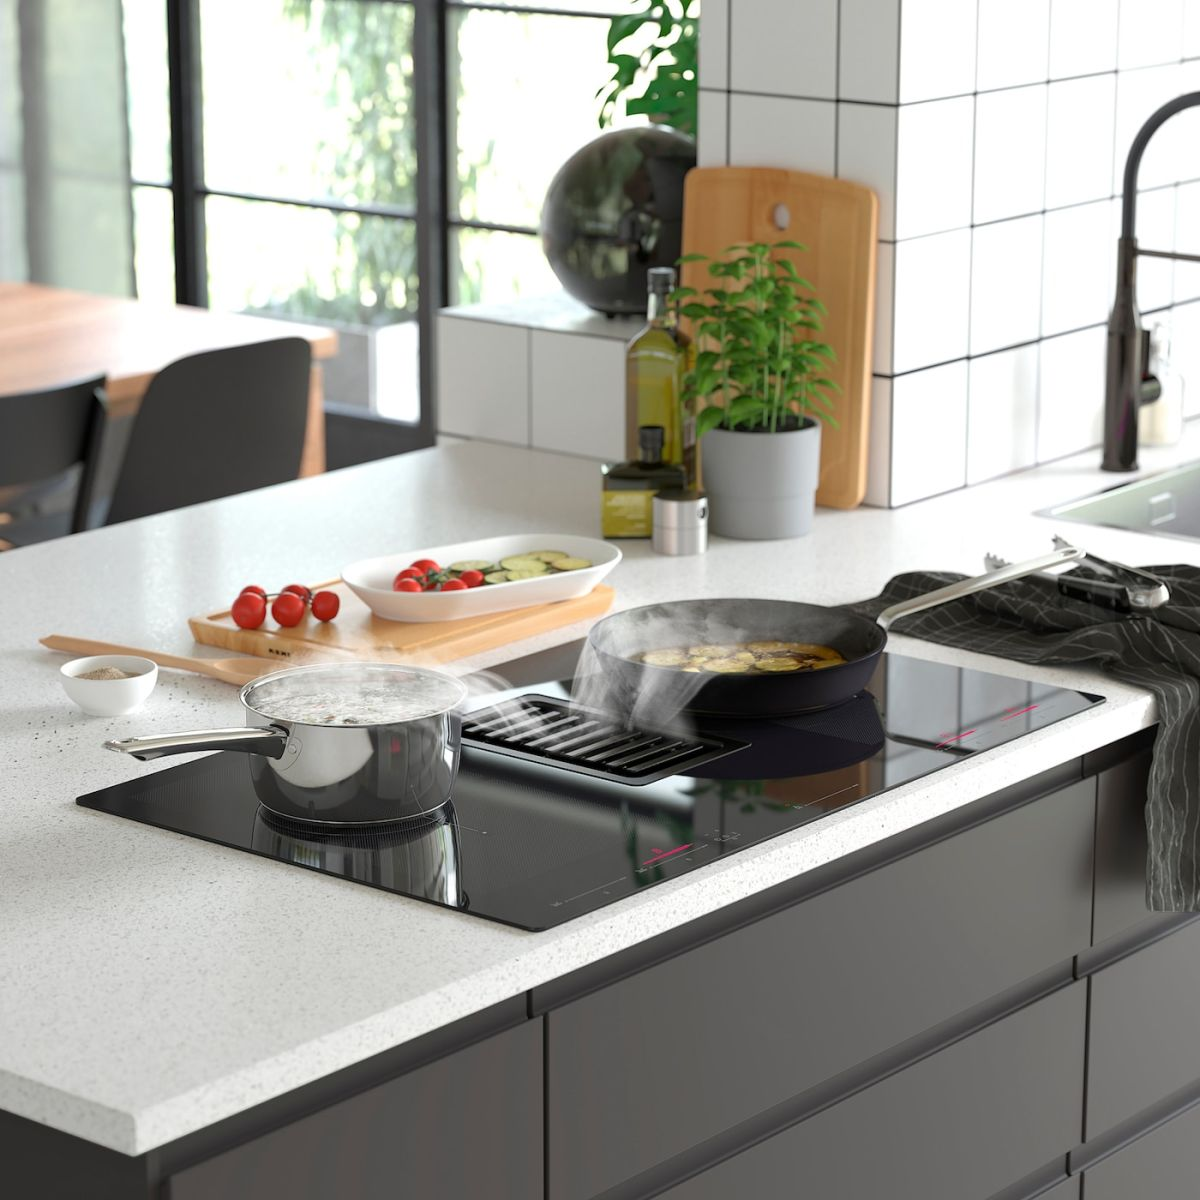 Meet Ikea's new energy-efficient, space-saving induction hob that's perfect for small kitchens